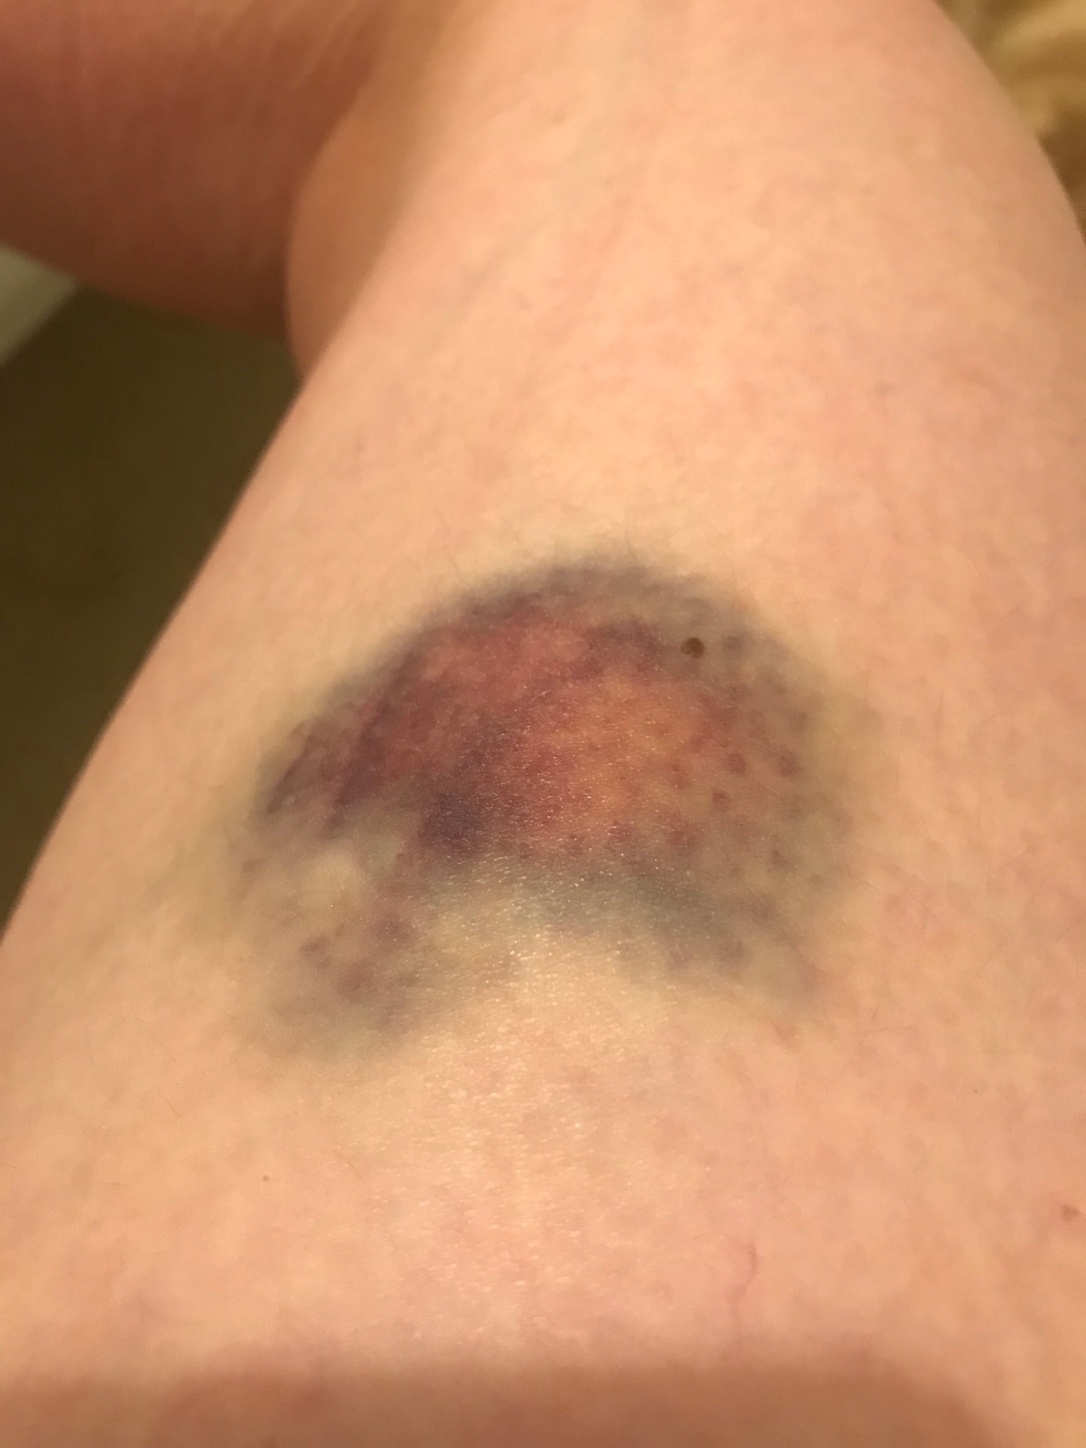 Hello Bath Skyline bruise